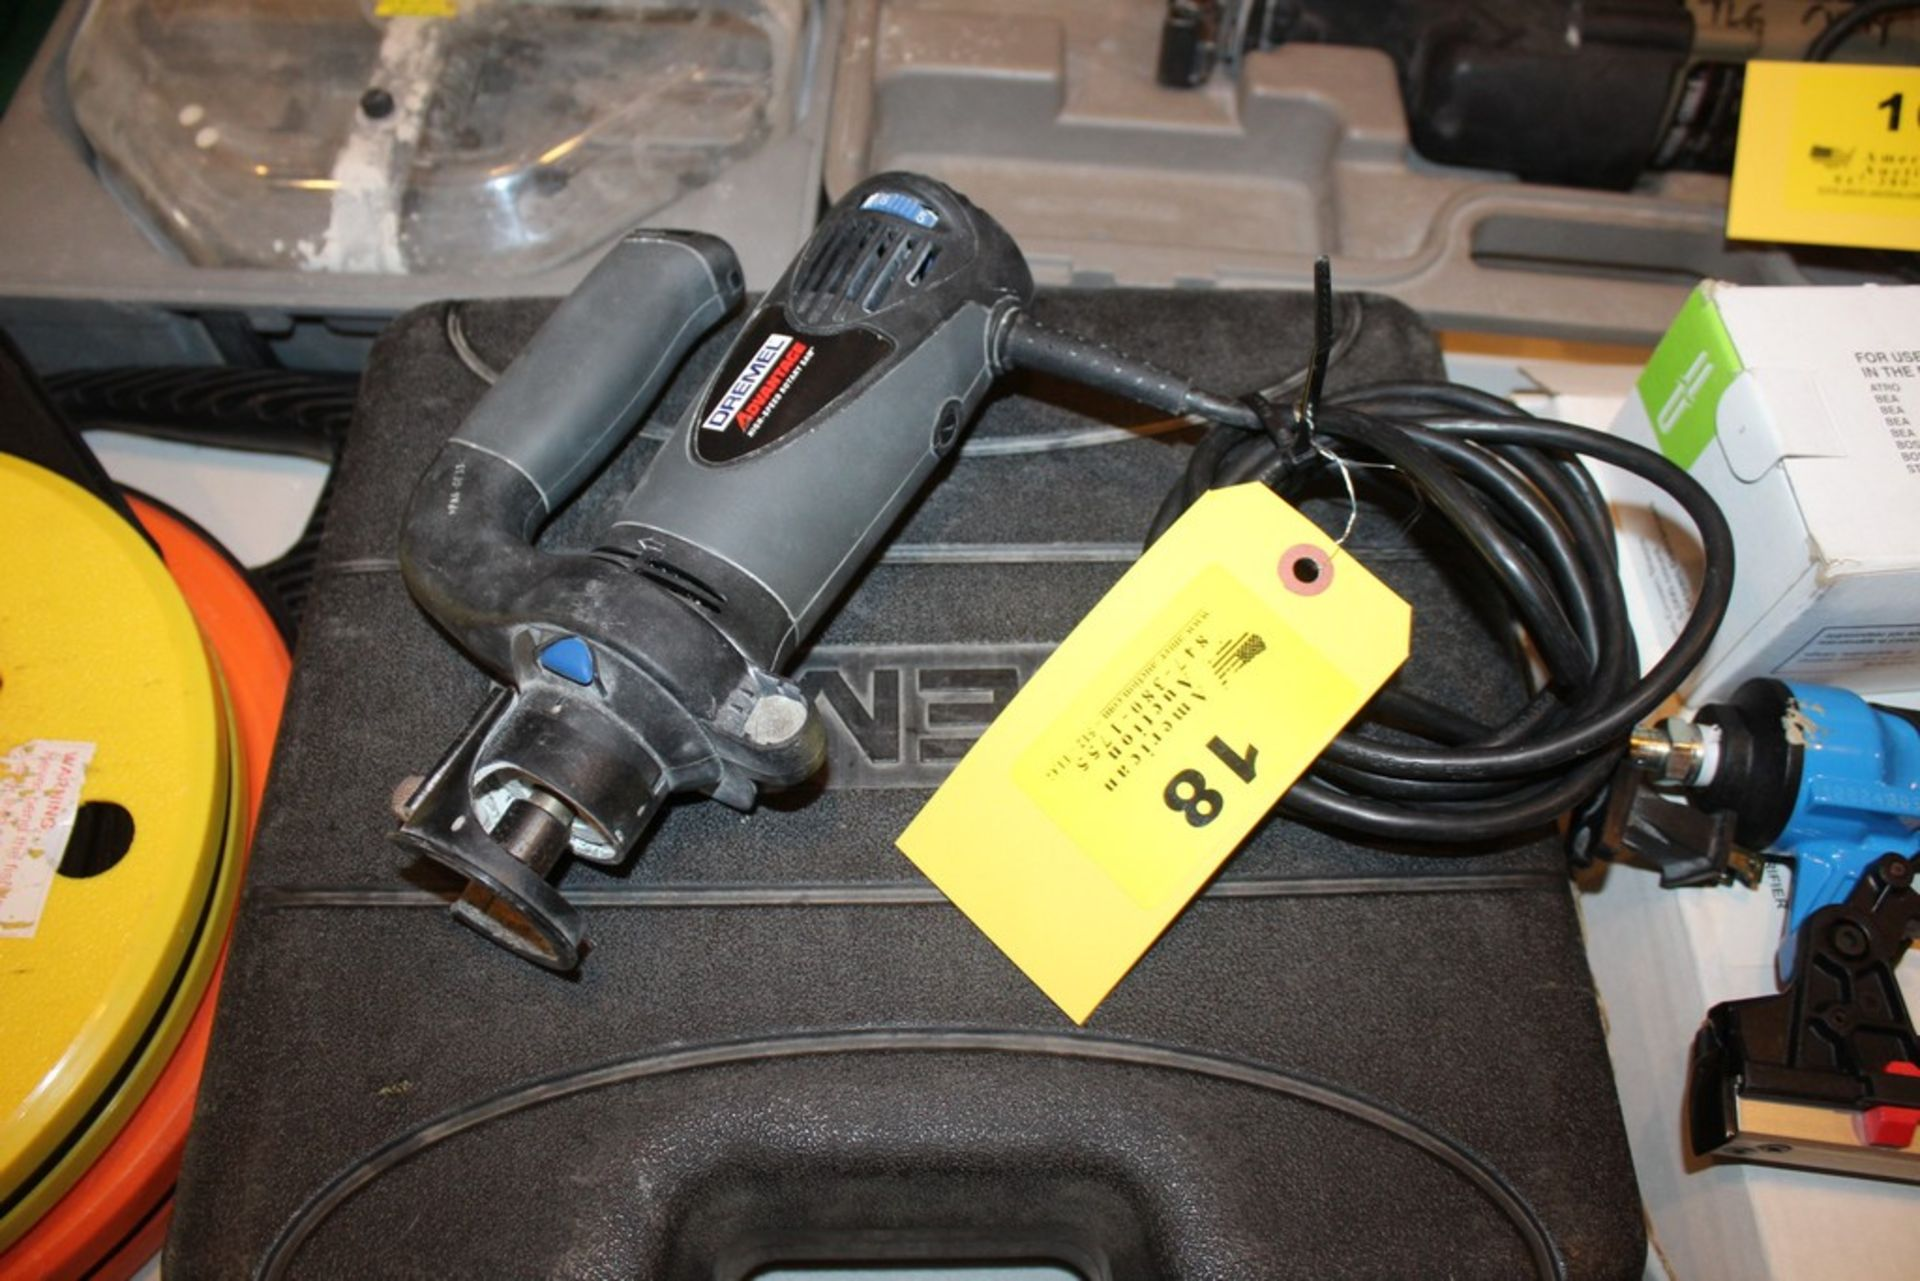 Lot 18 - DREMEL ADVANTAGE HIGH-SPEED ROTARY SAW AND DREMEL 7700 ROTARY TOOL WITH CASE, NO CHARGER FOR